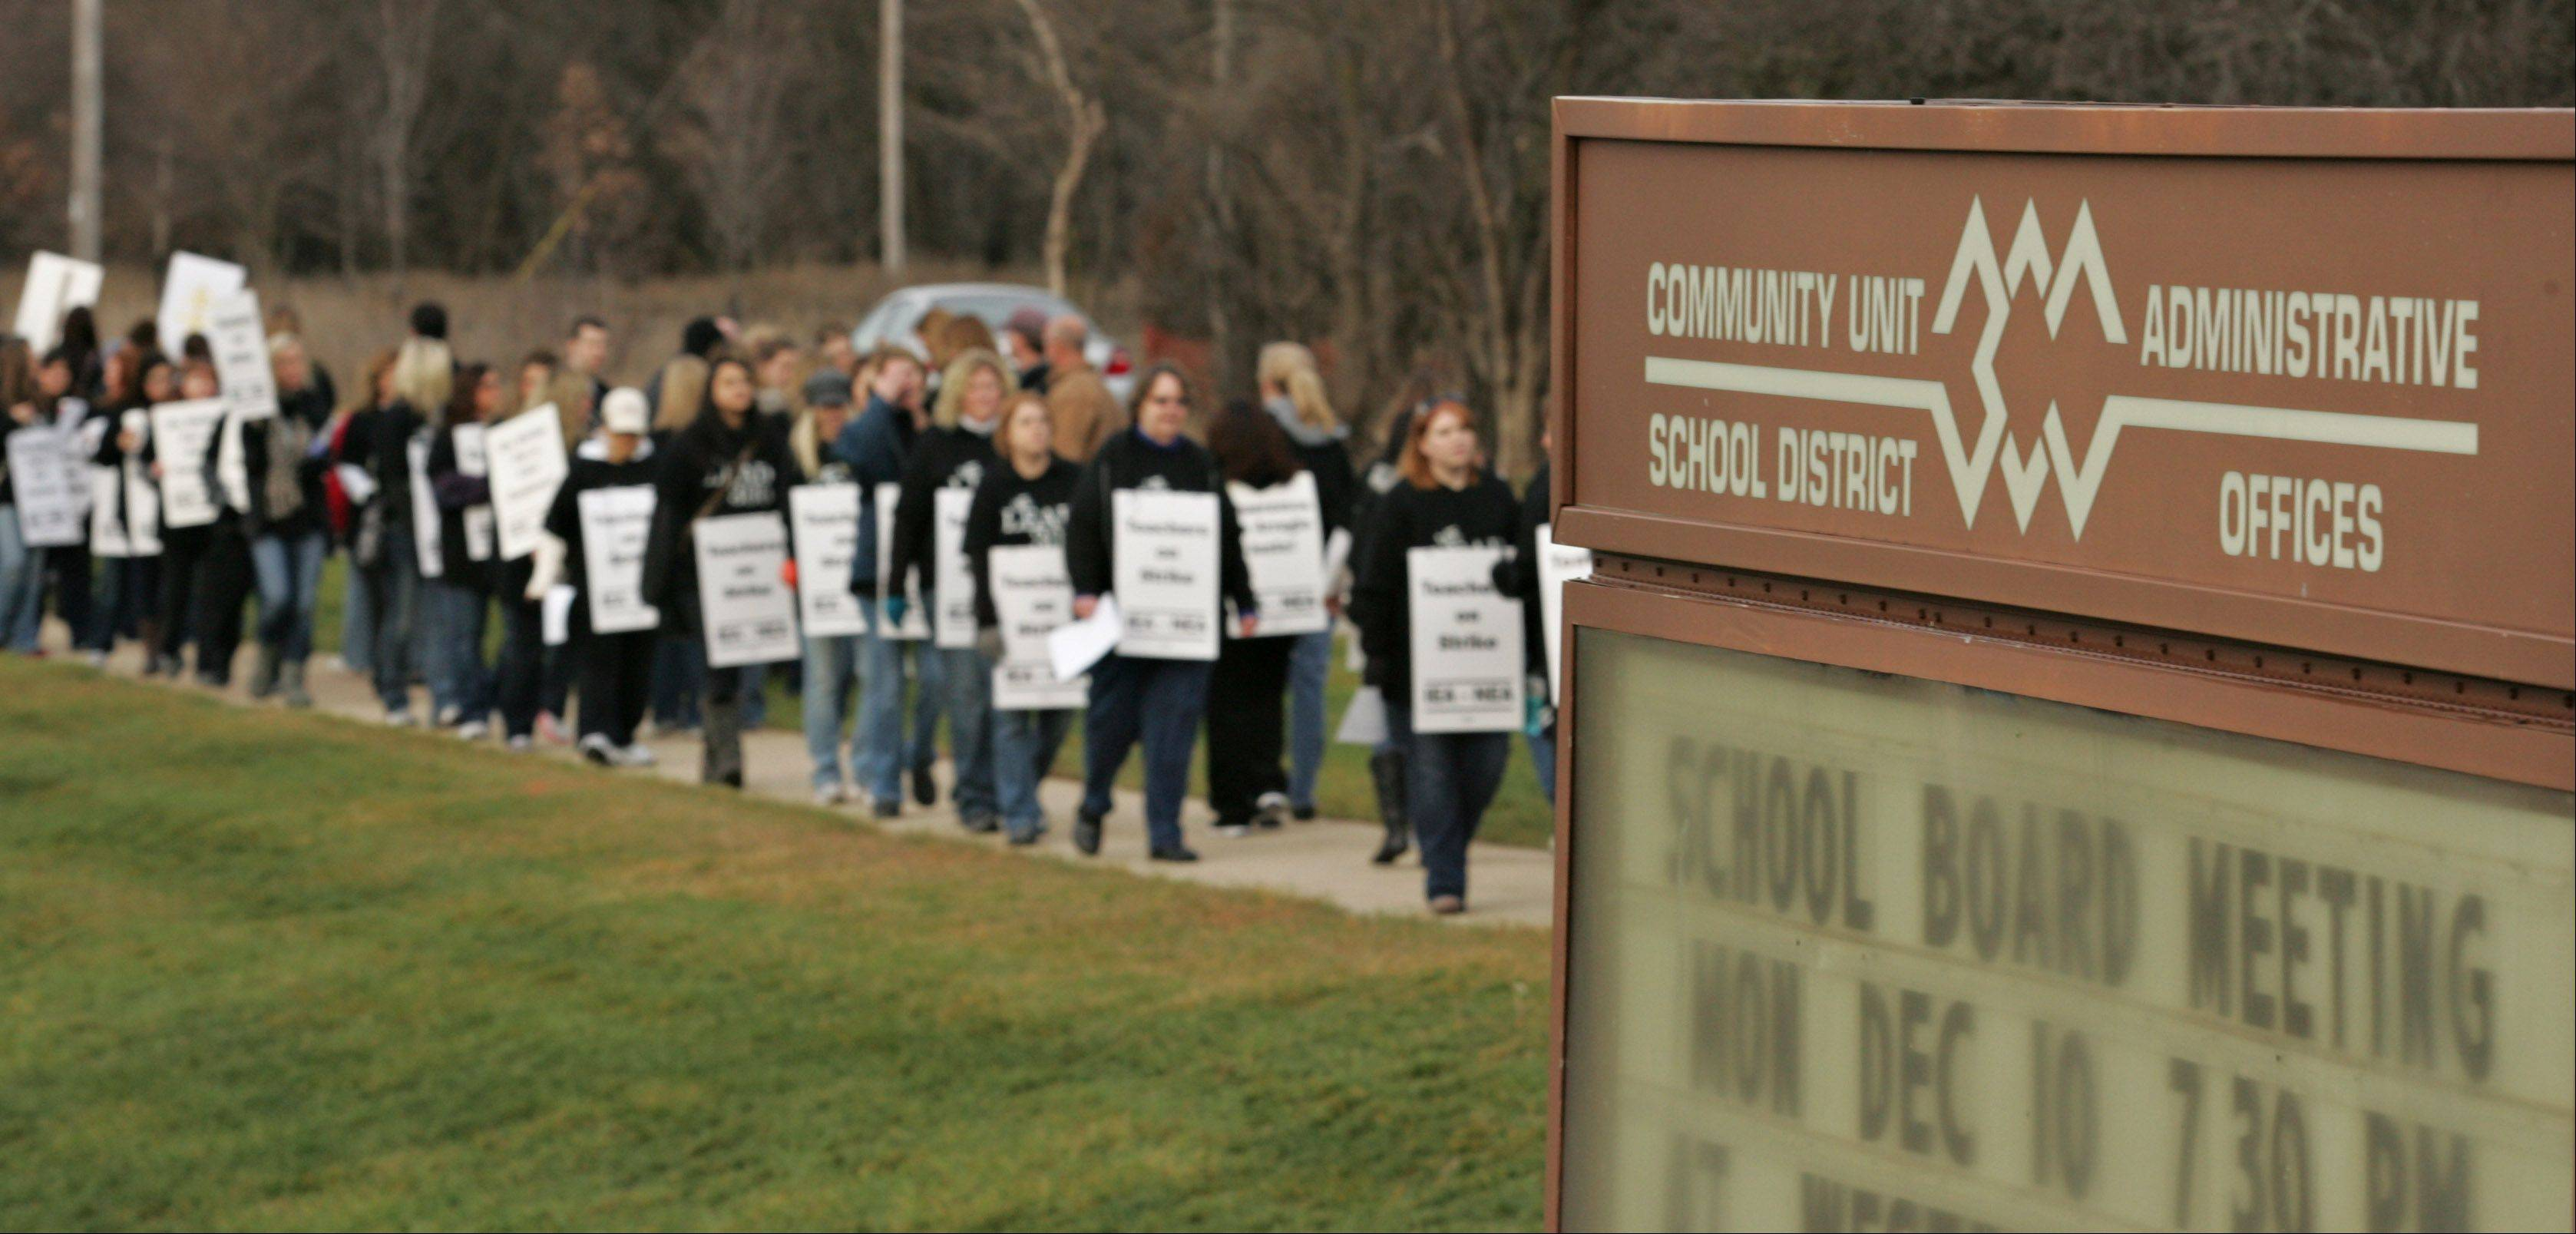 Striking Community Unit District 300 teachers picket near the district headquarters Tuesday morning in Carpentersville.